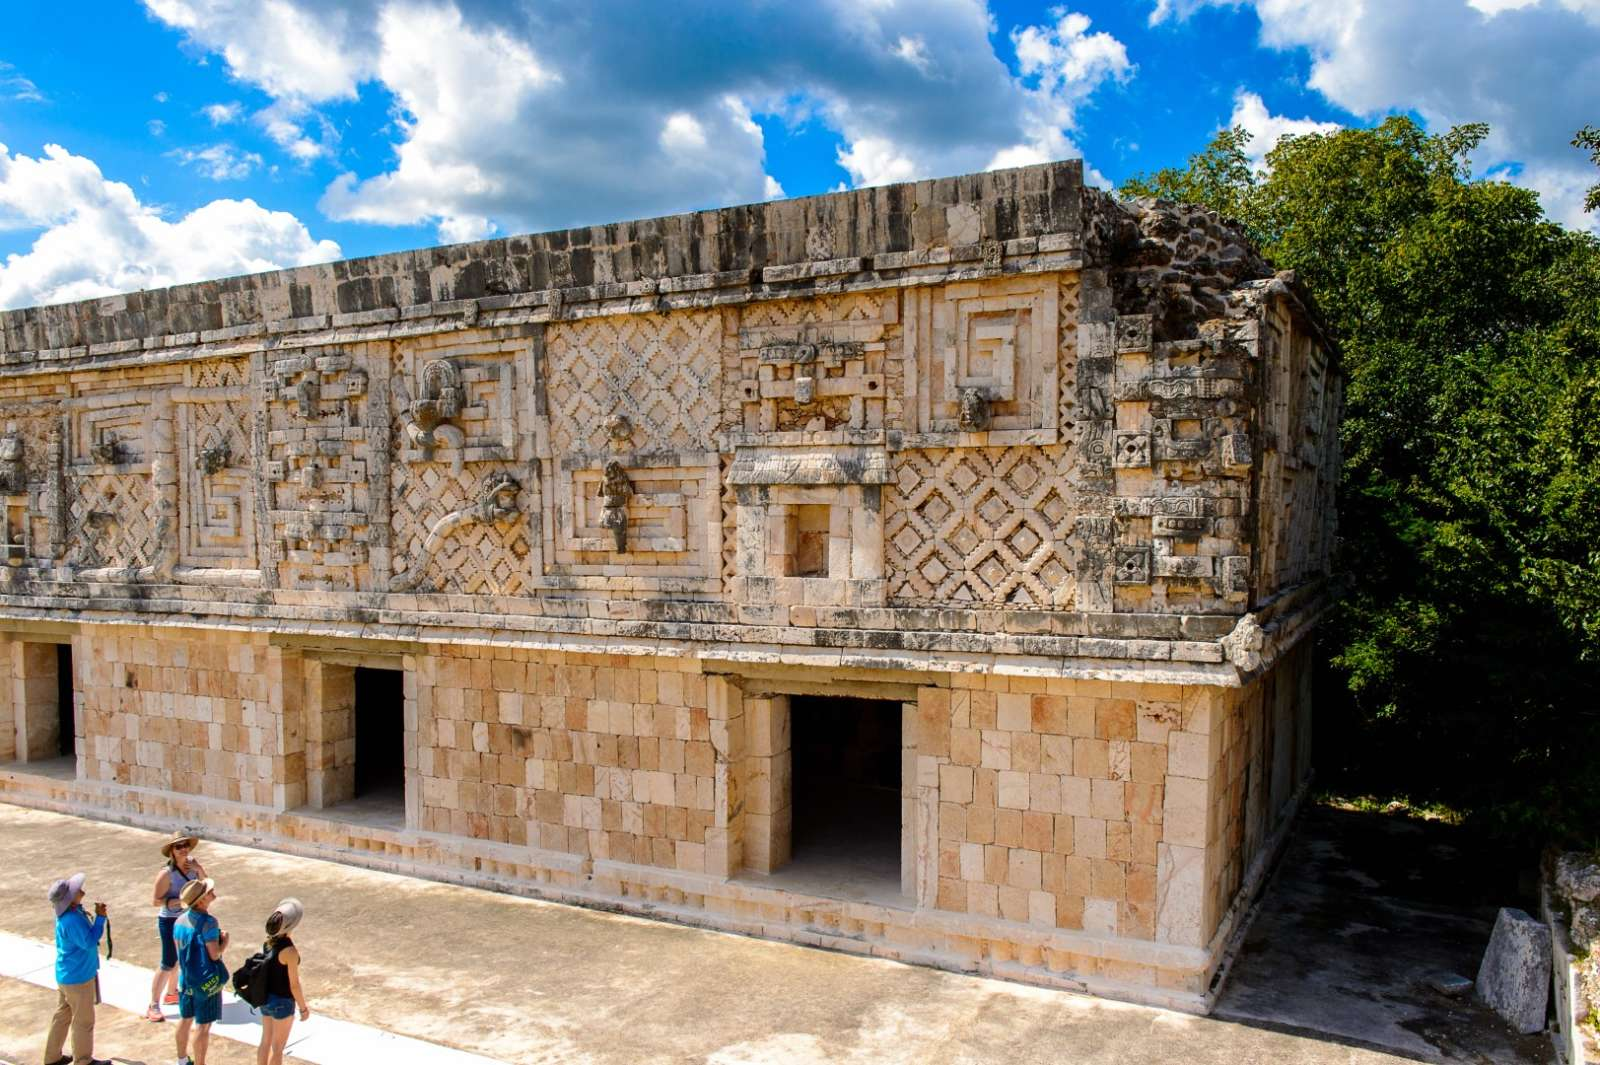 Building of the nunnery, Uxmal Mexico